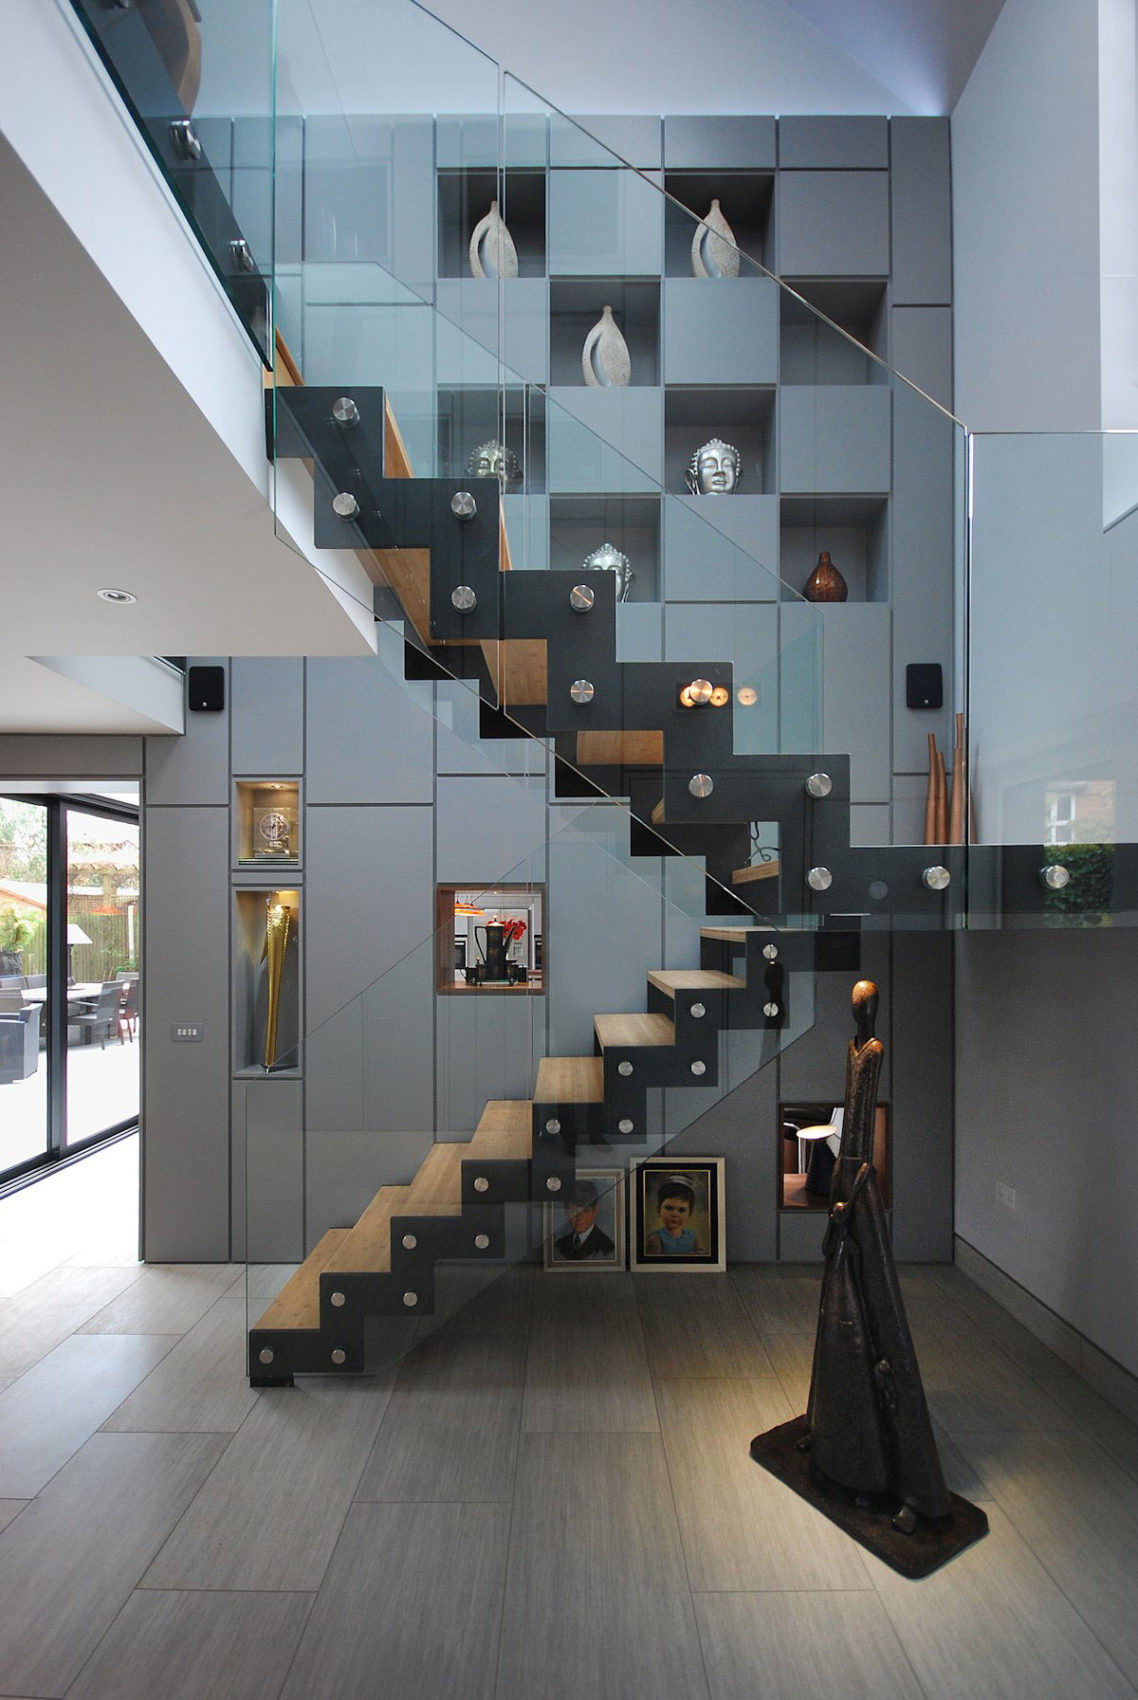 Merrodown by Stephen Davy Peter Smith Architects (8)